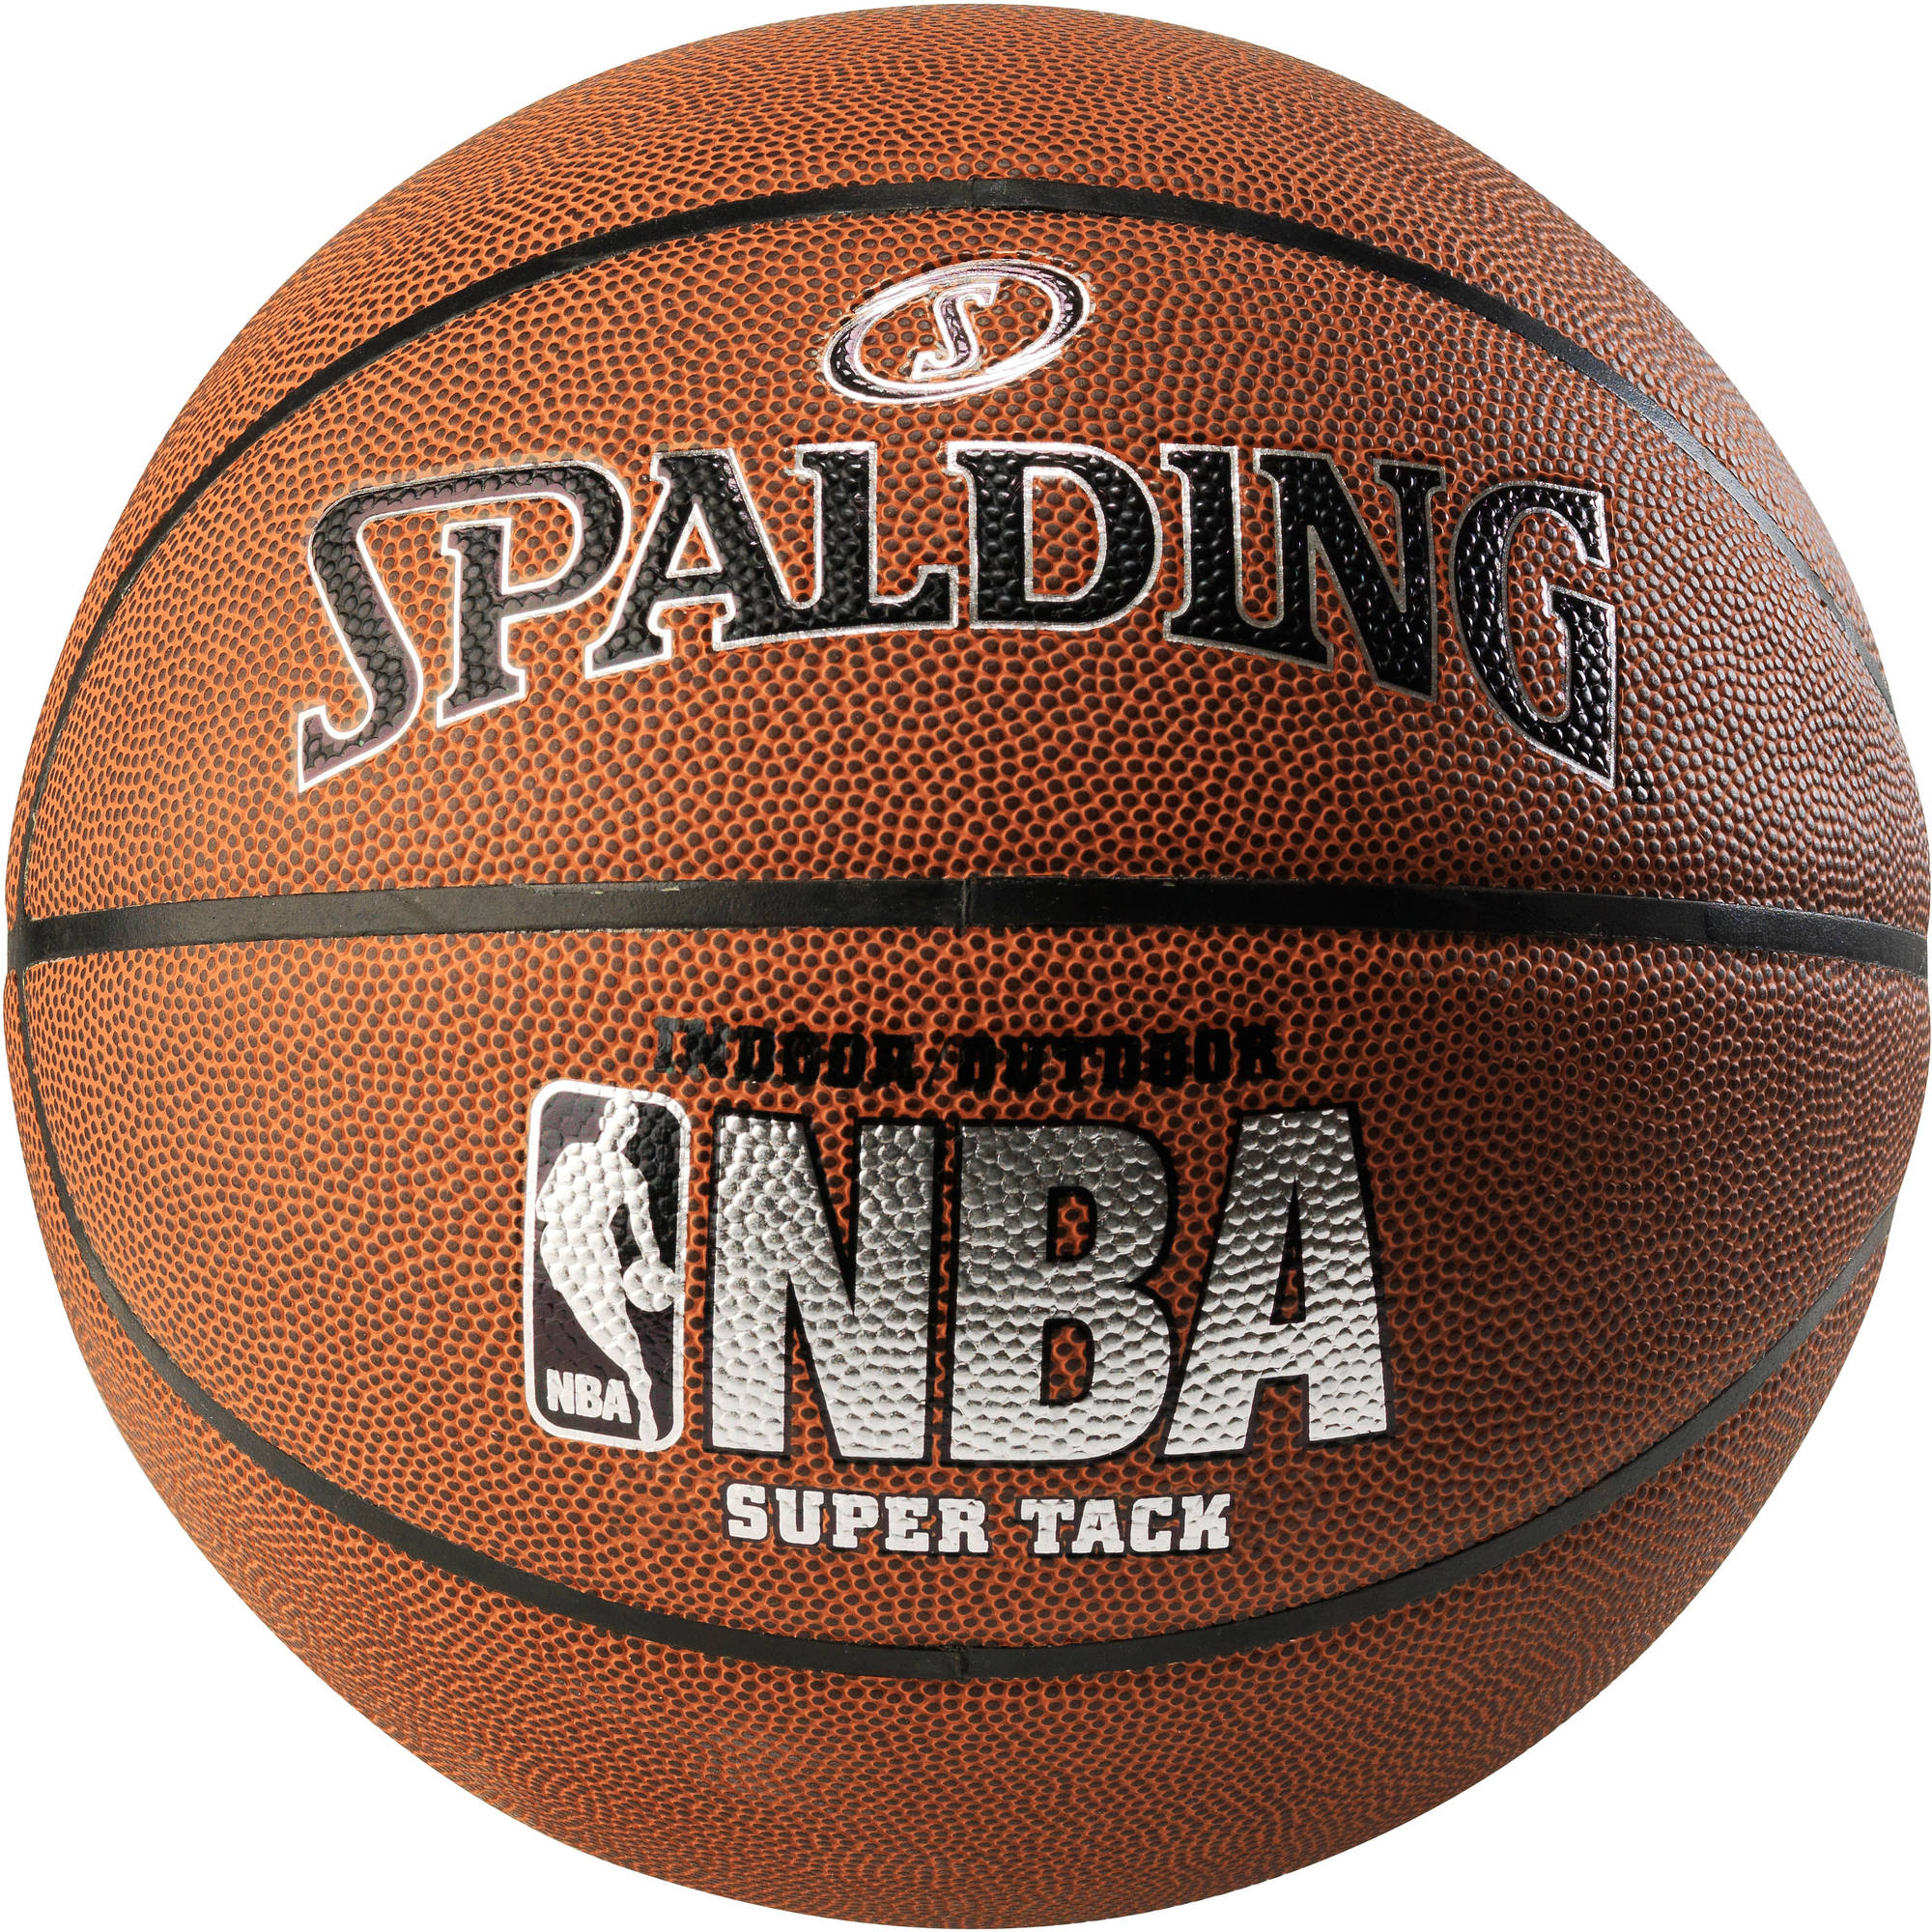 Spalding NBA SUPER TACK Basketball, Official Size 29.5""